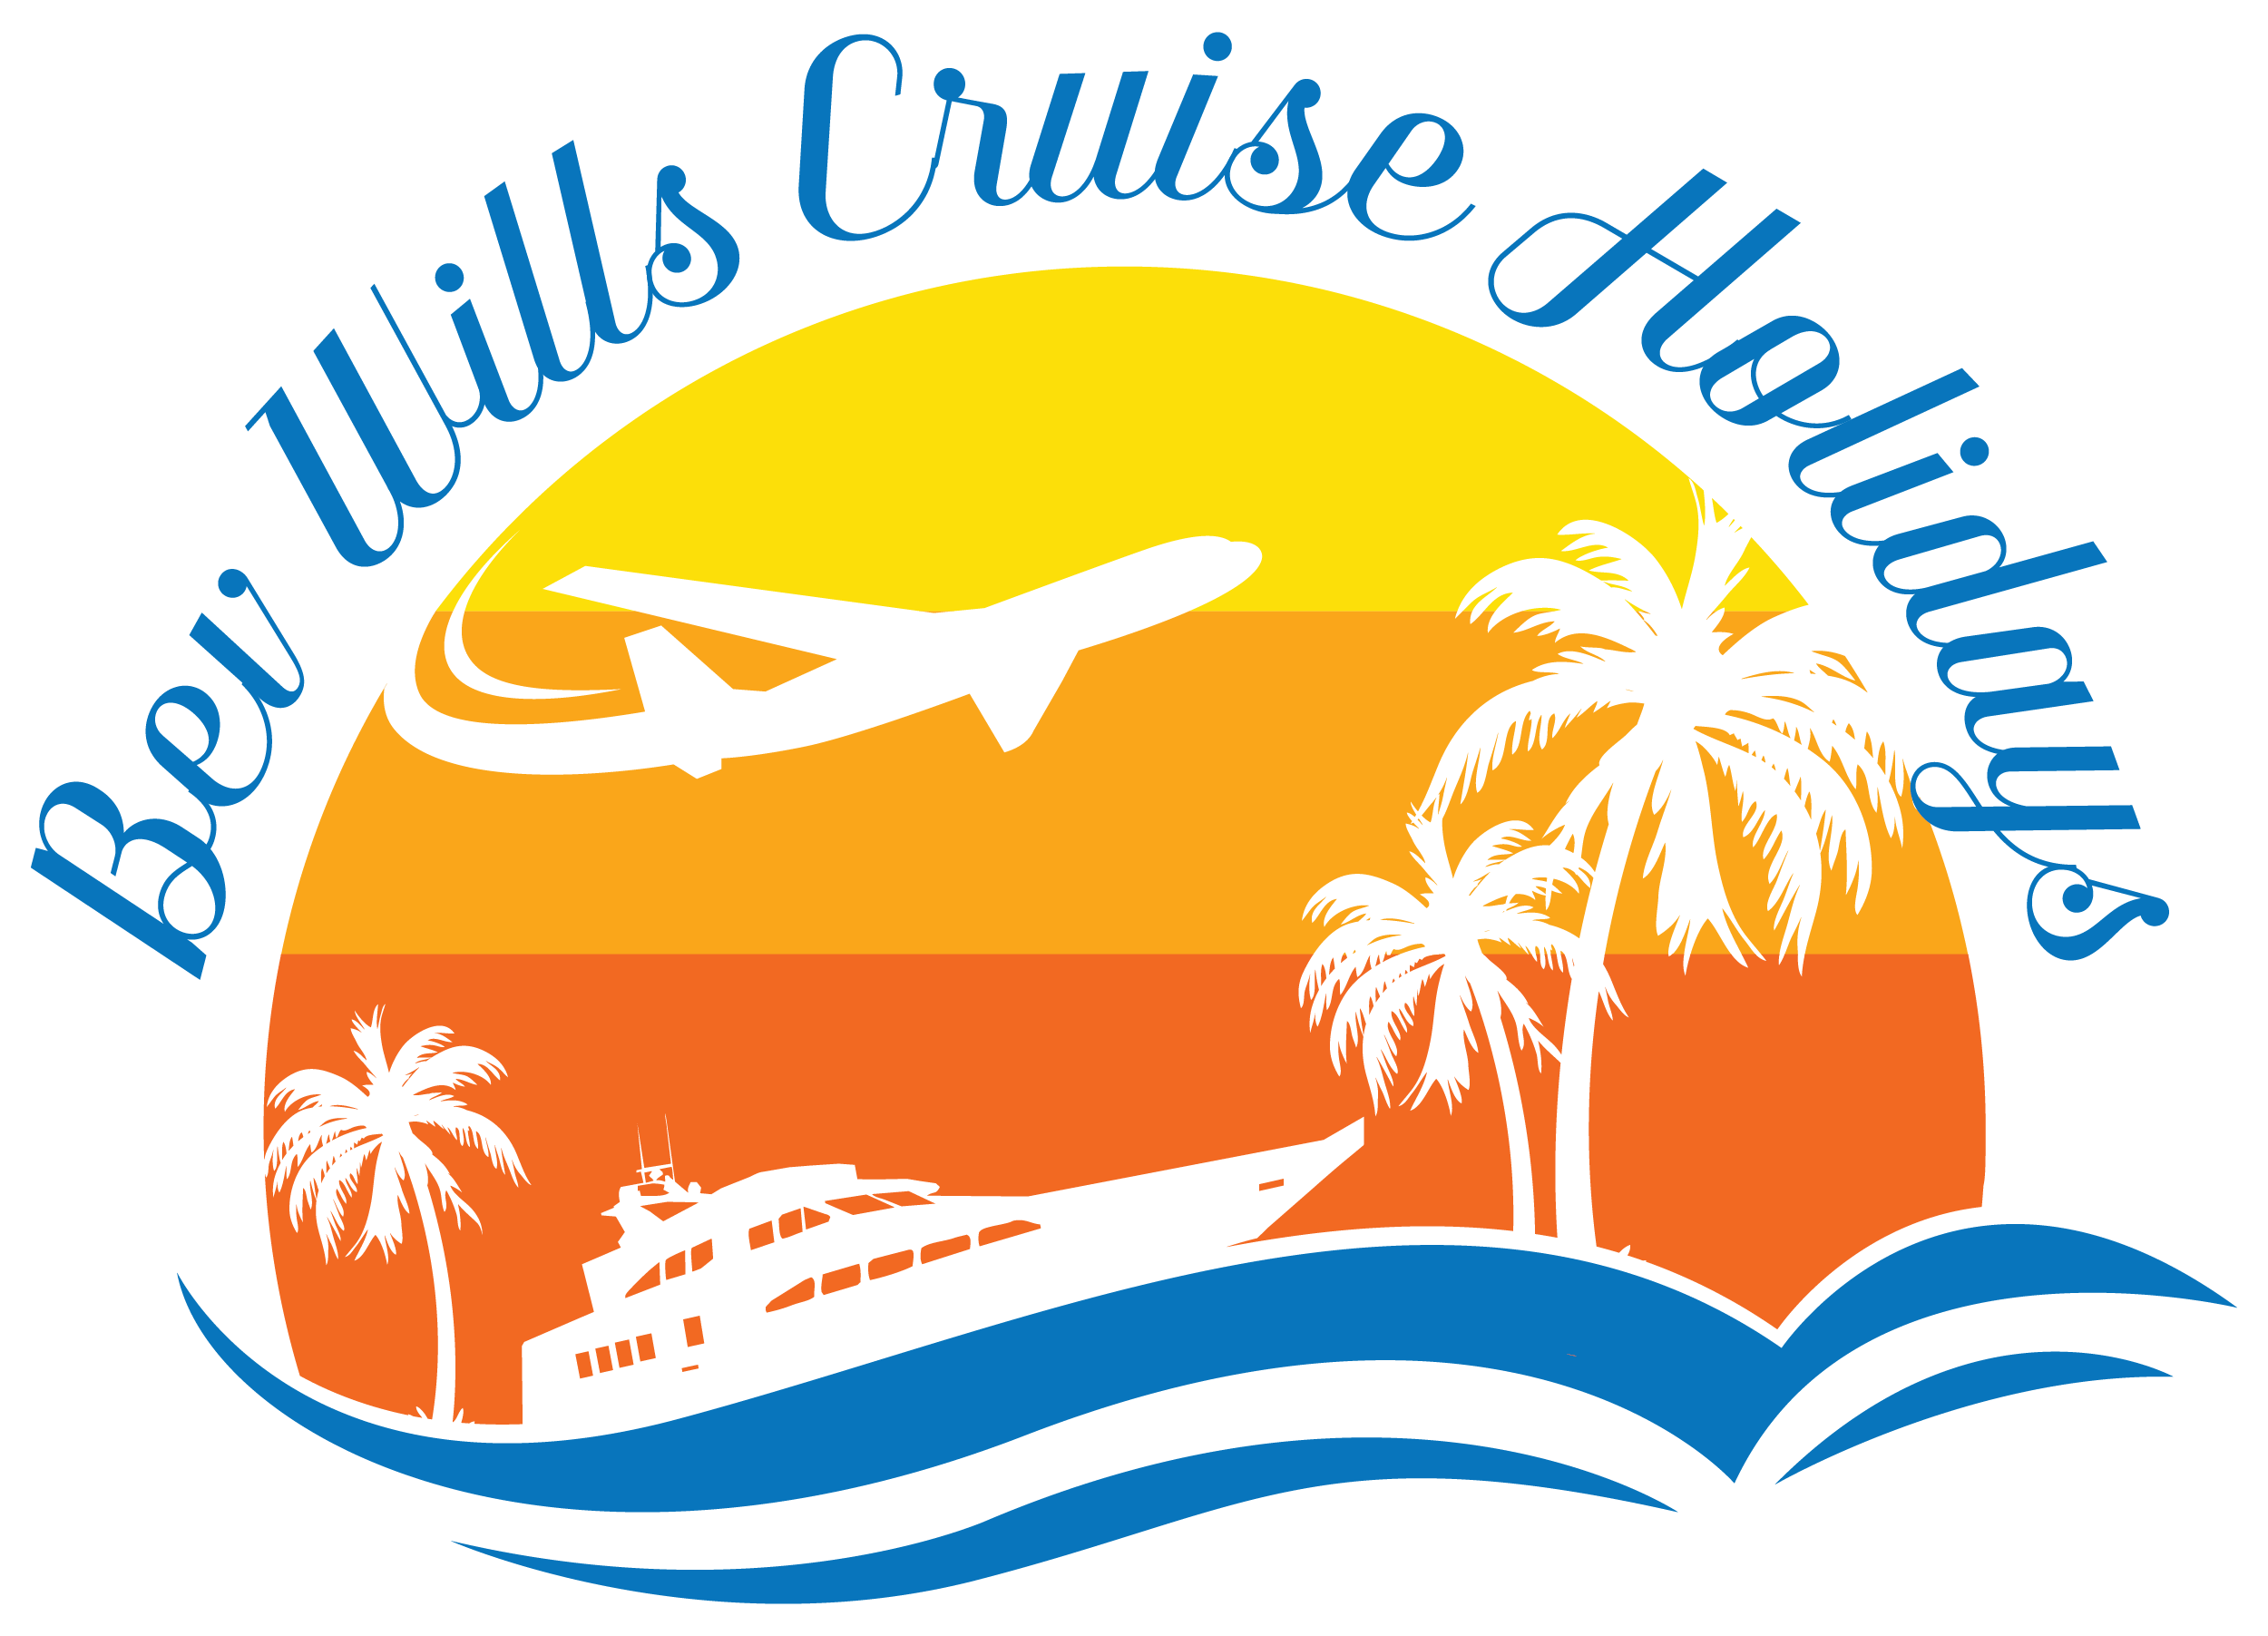 Bev Wills Cruise Holidays